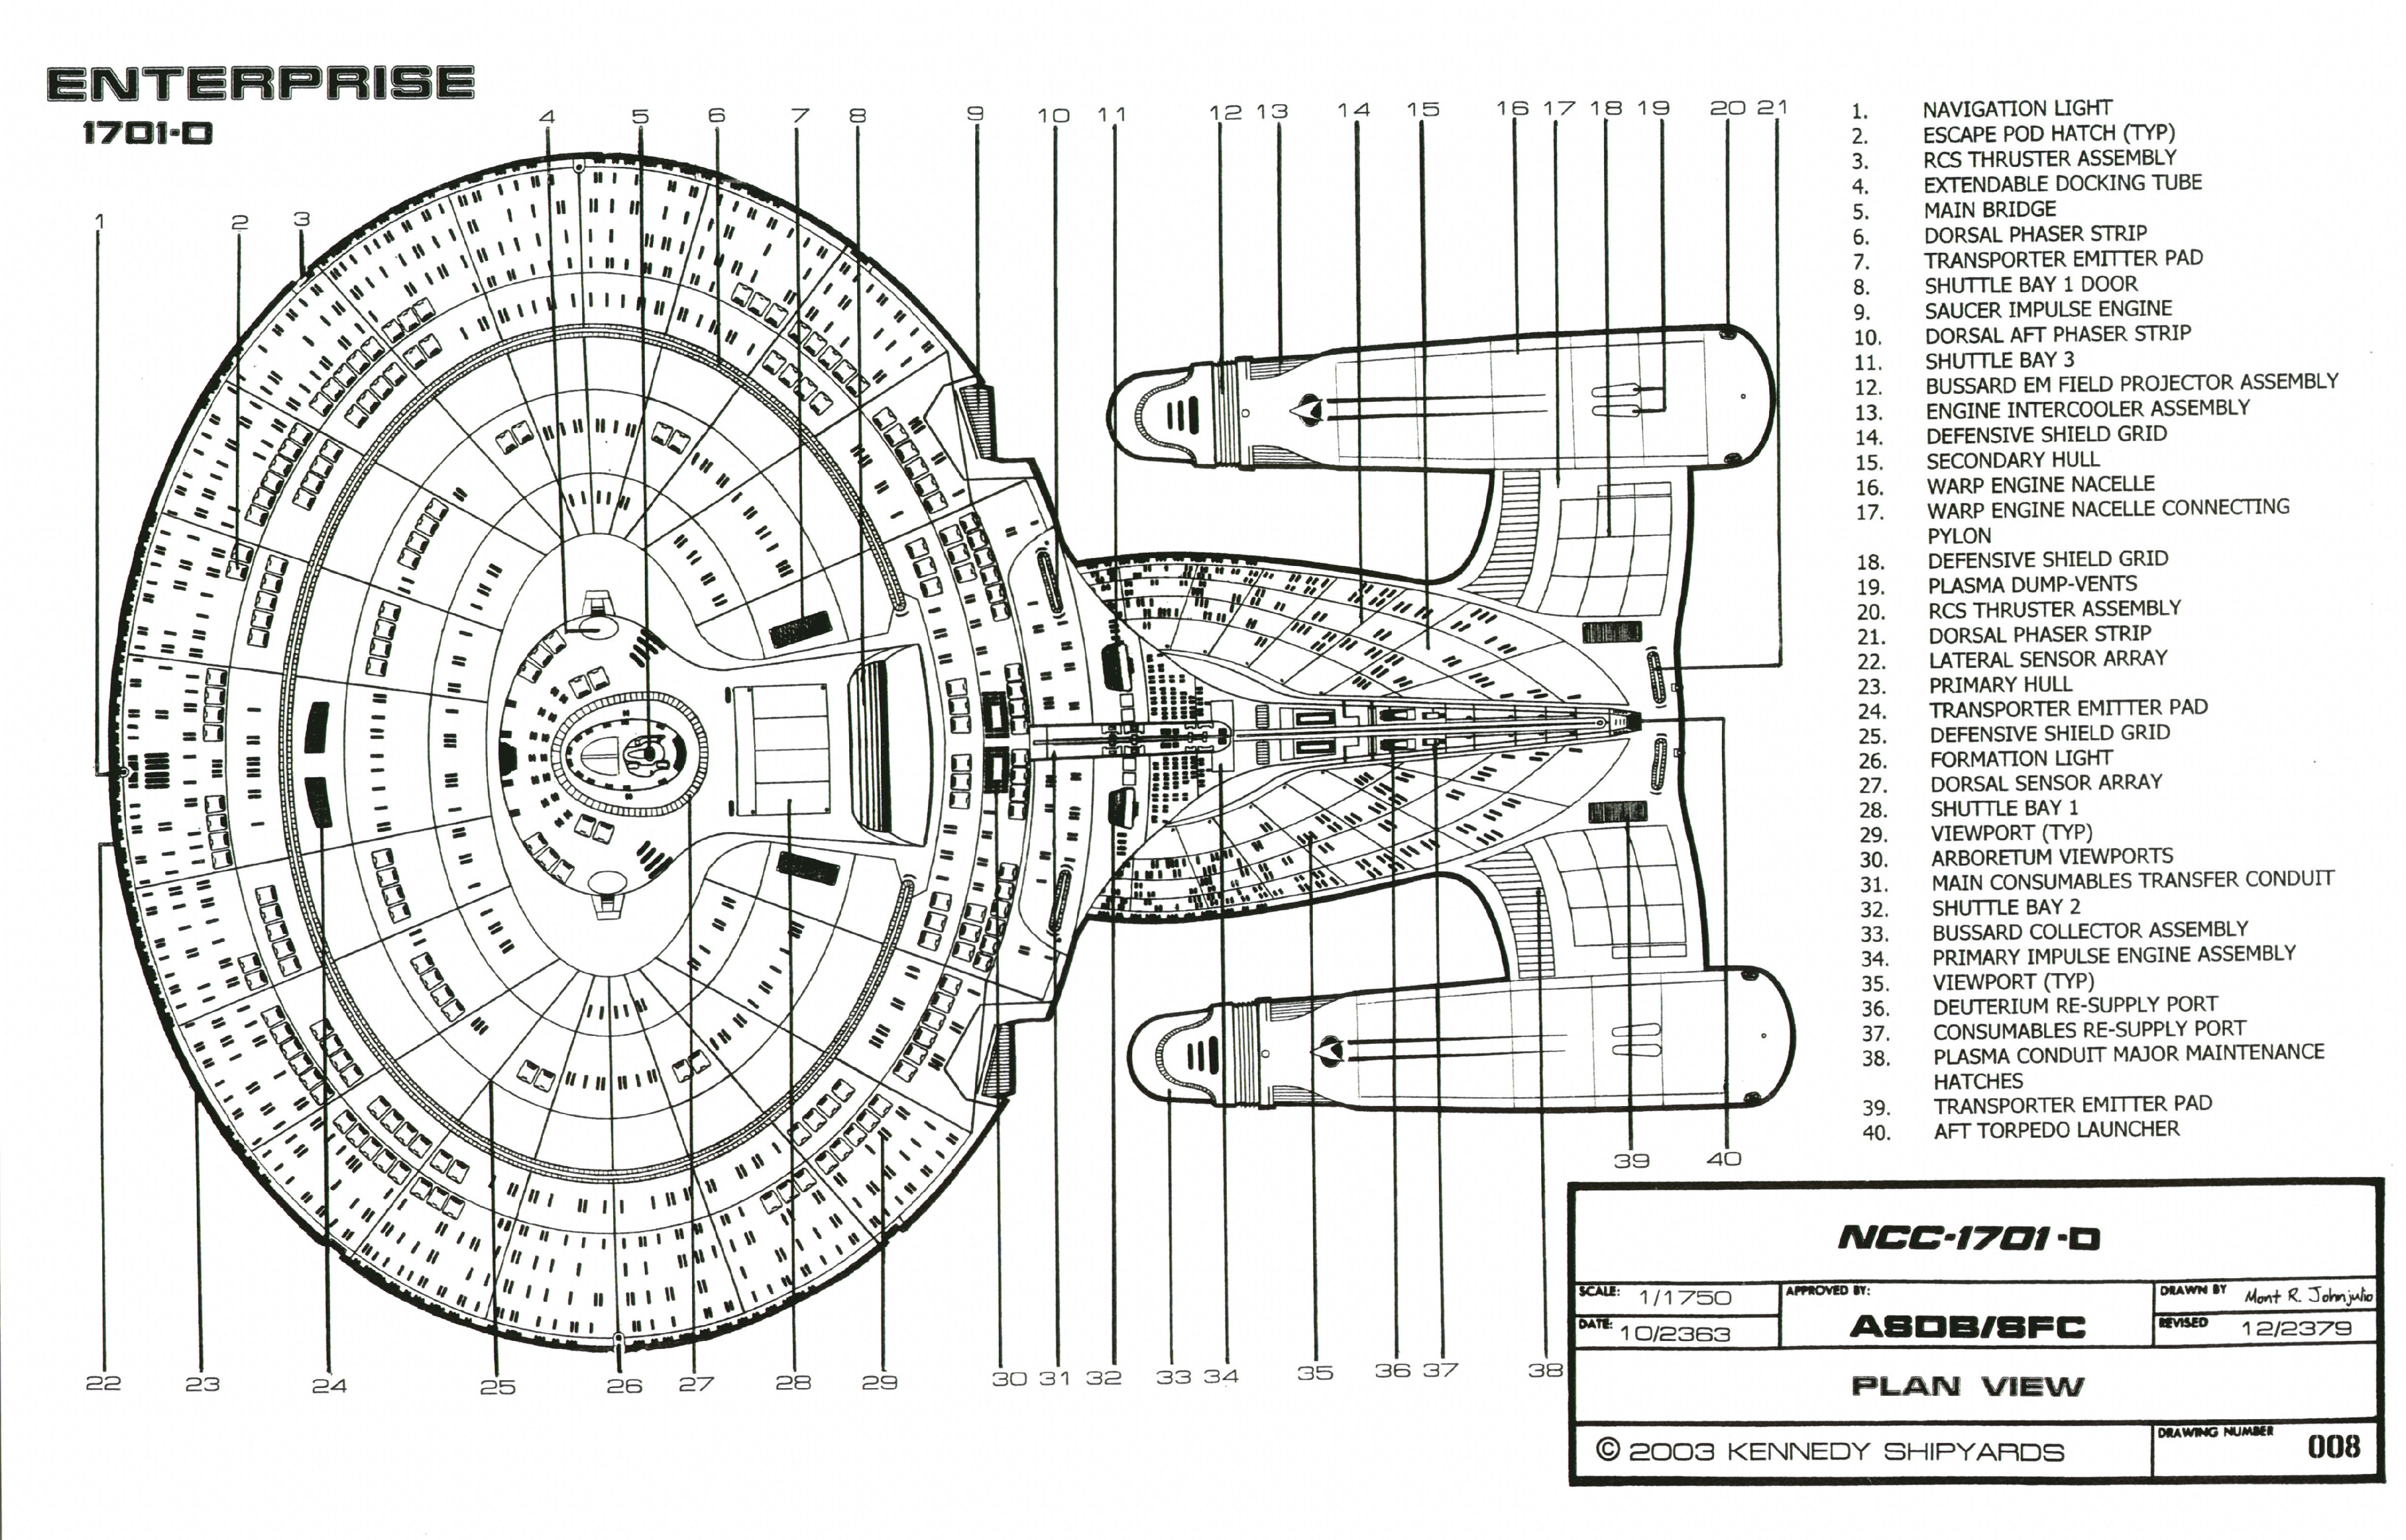 starfleet vessel: galaxy class starship - u.s.s. enterprise ncc-1701-d, Schematic